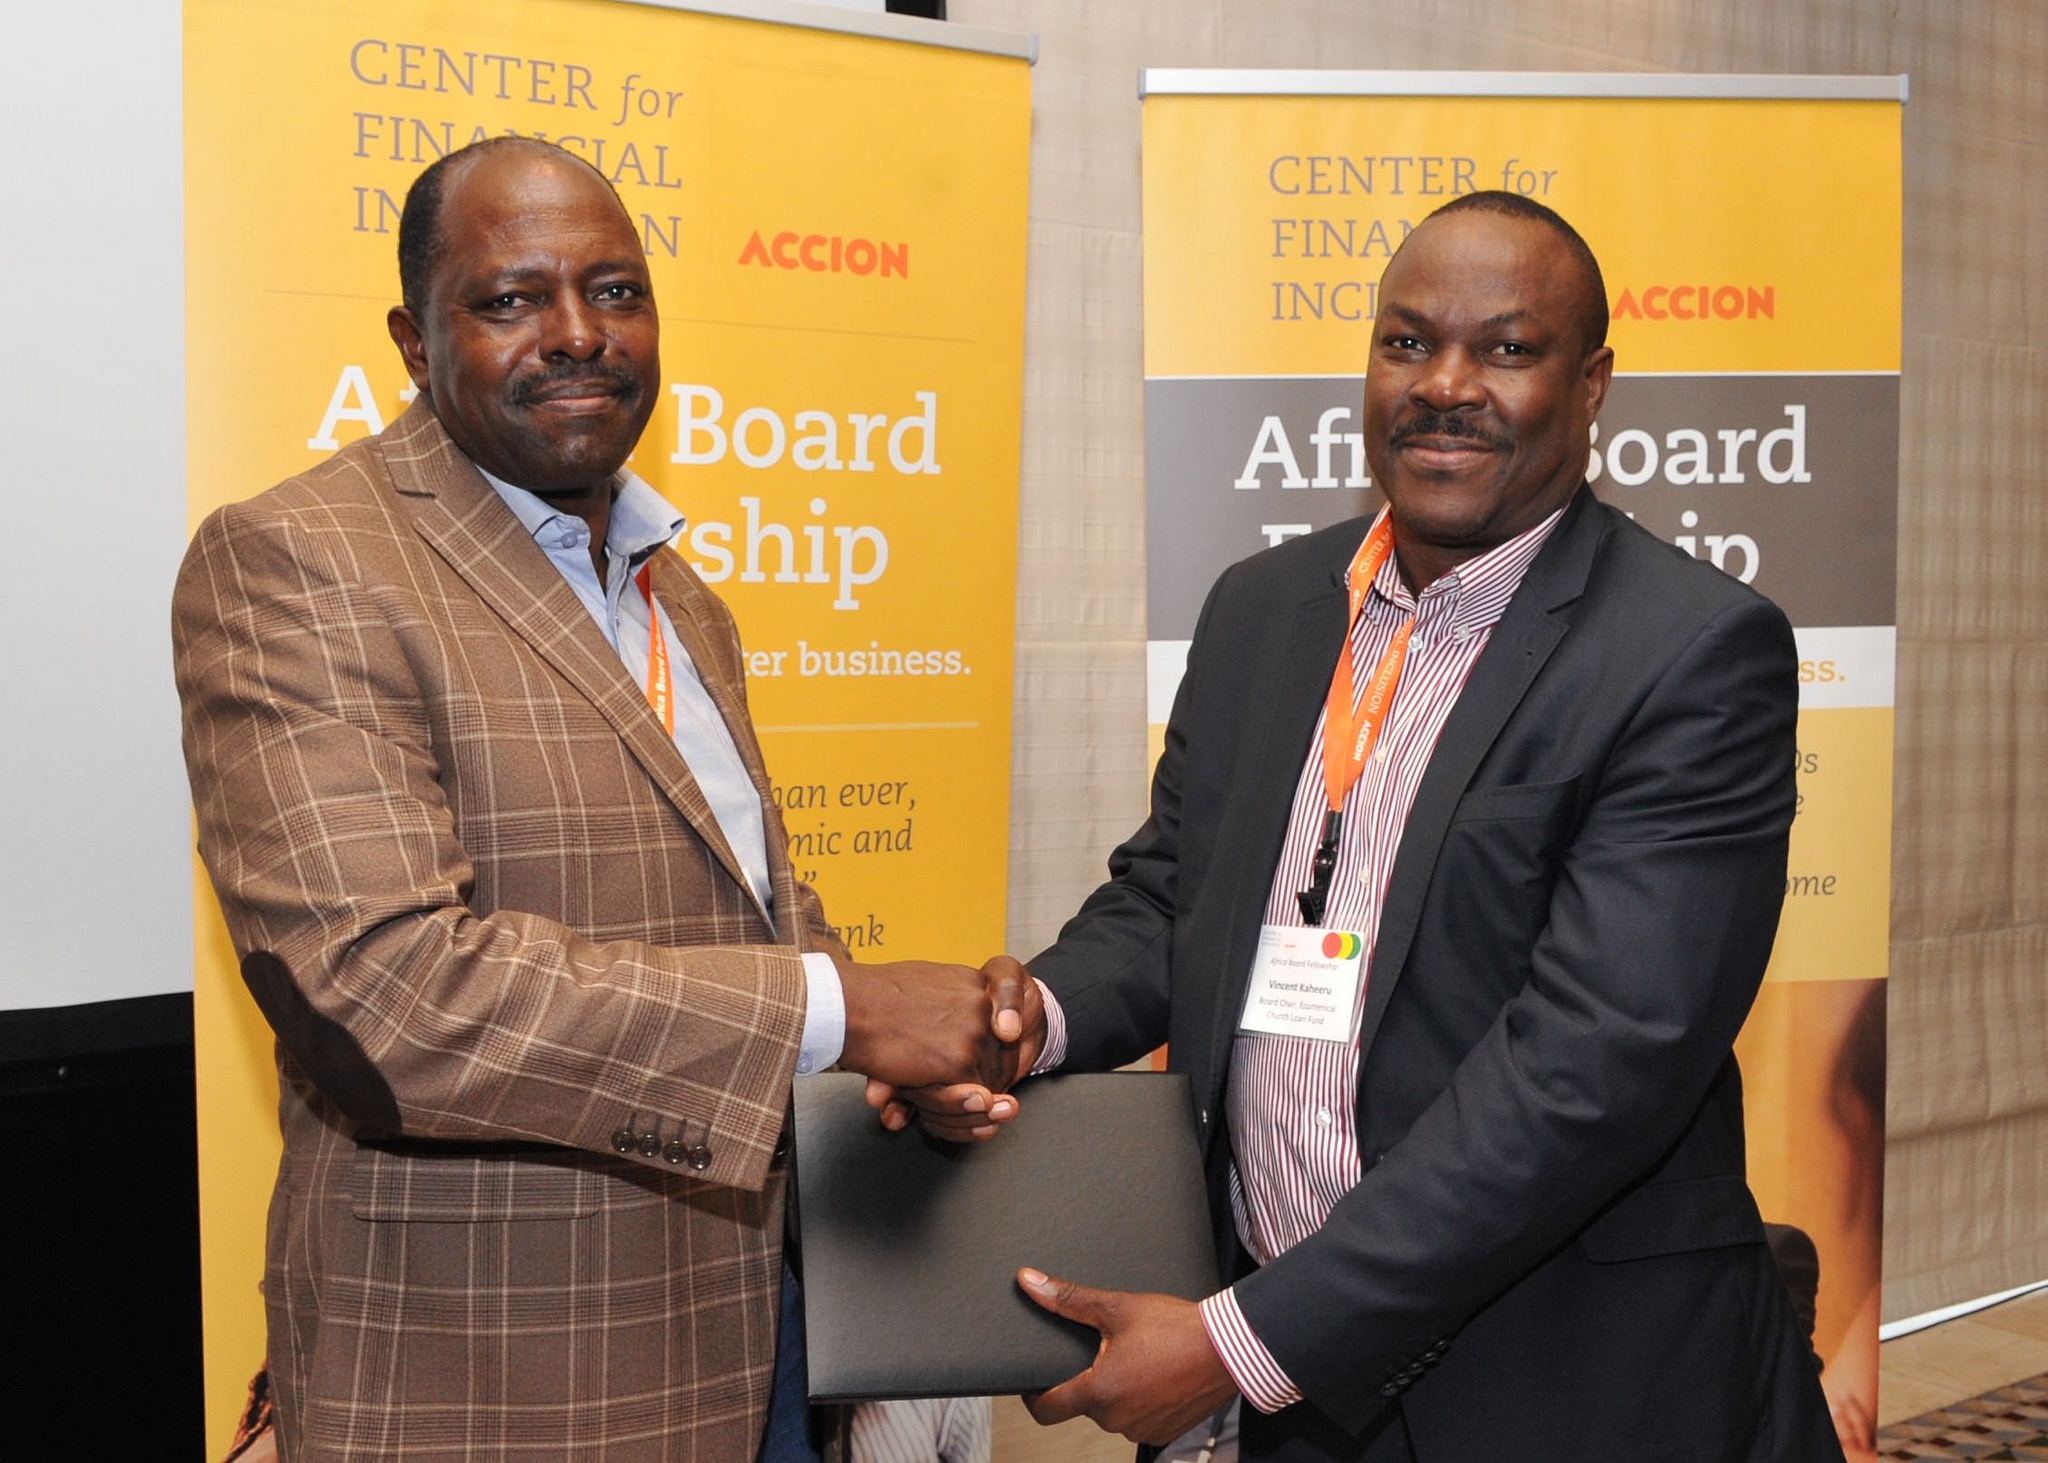 ABF Fellows Vincent Kaheeru and Robert Ongodia